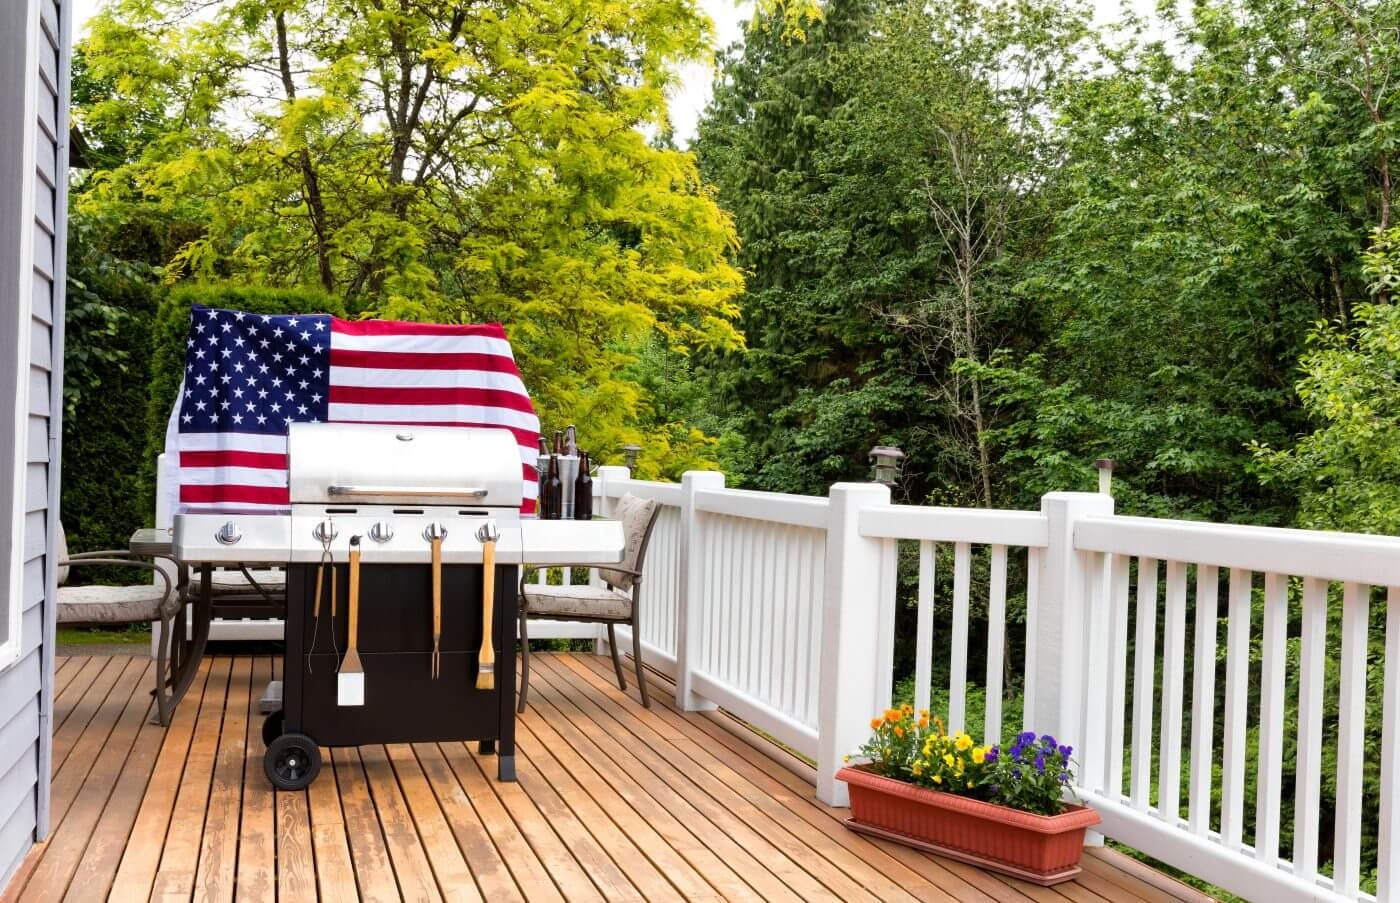 Improve Your Yard & Eliminate Bugs Just in Time for Your 4th of July Party